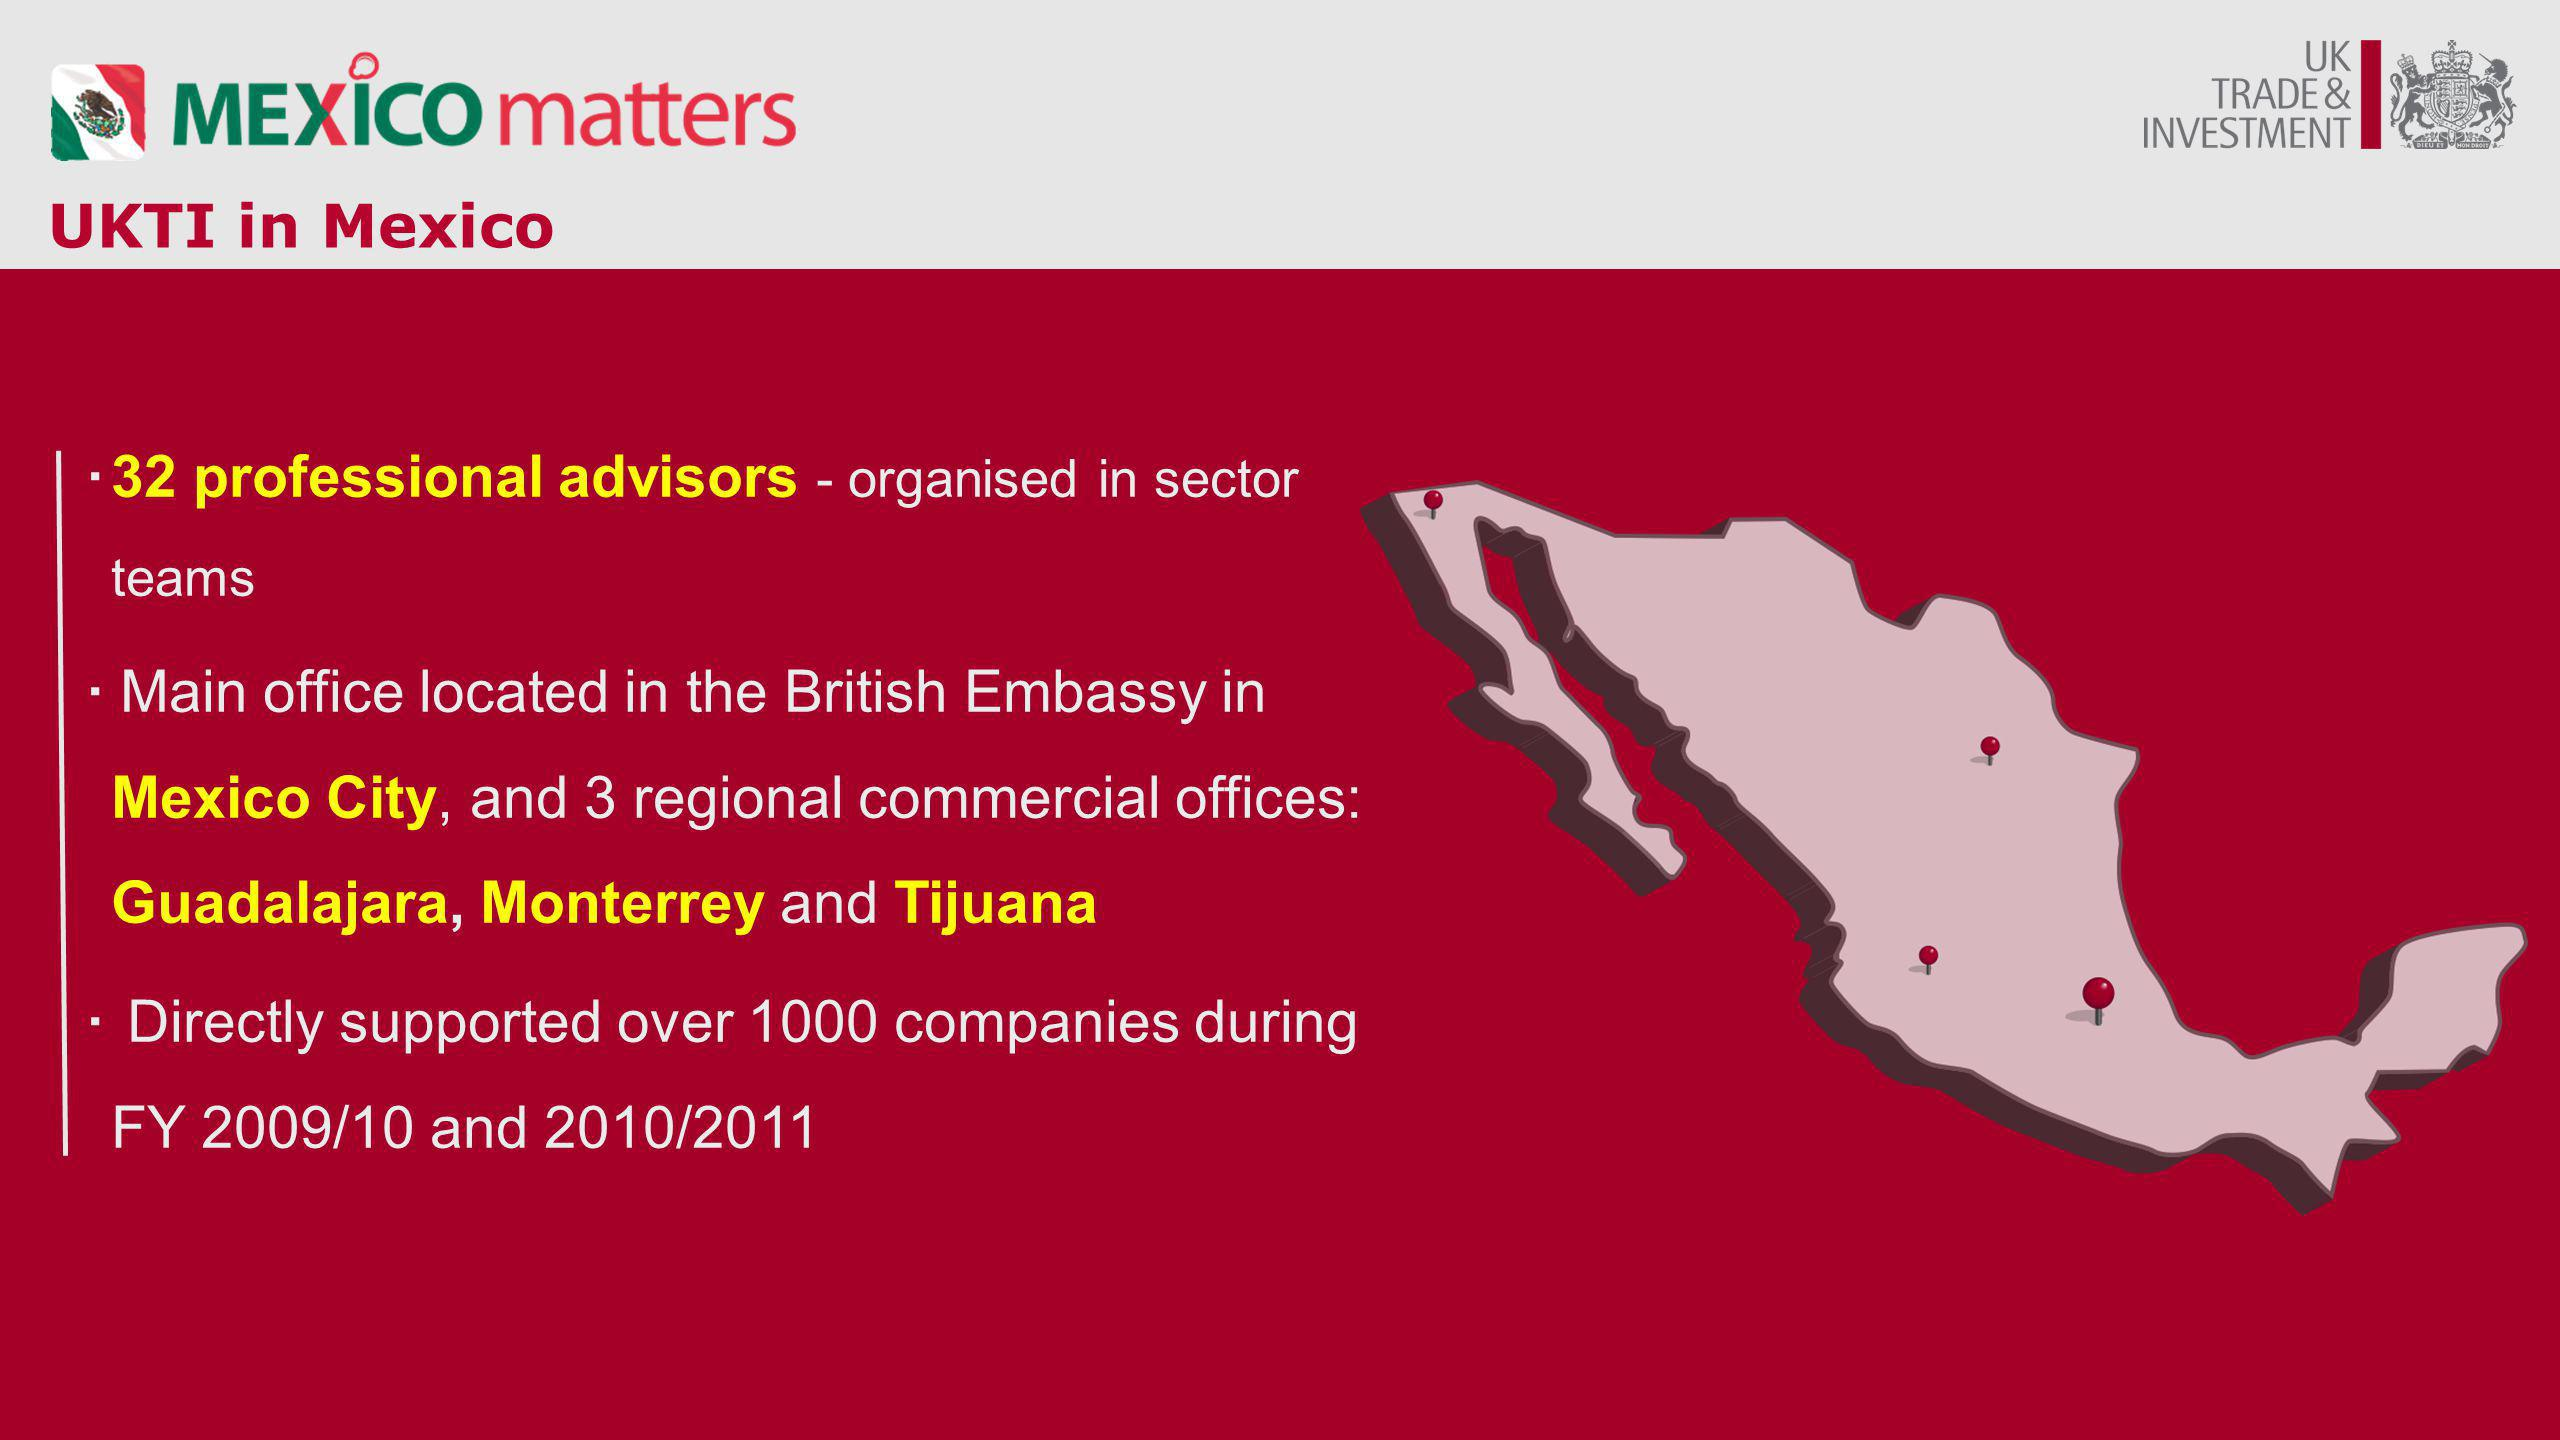 UKTI in Mexico ·32 professional advisors - organised in sector teams · Main office located in the British Embassy in Mexico City, and 3 regional comme